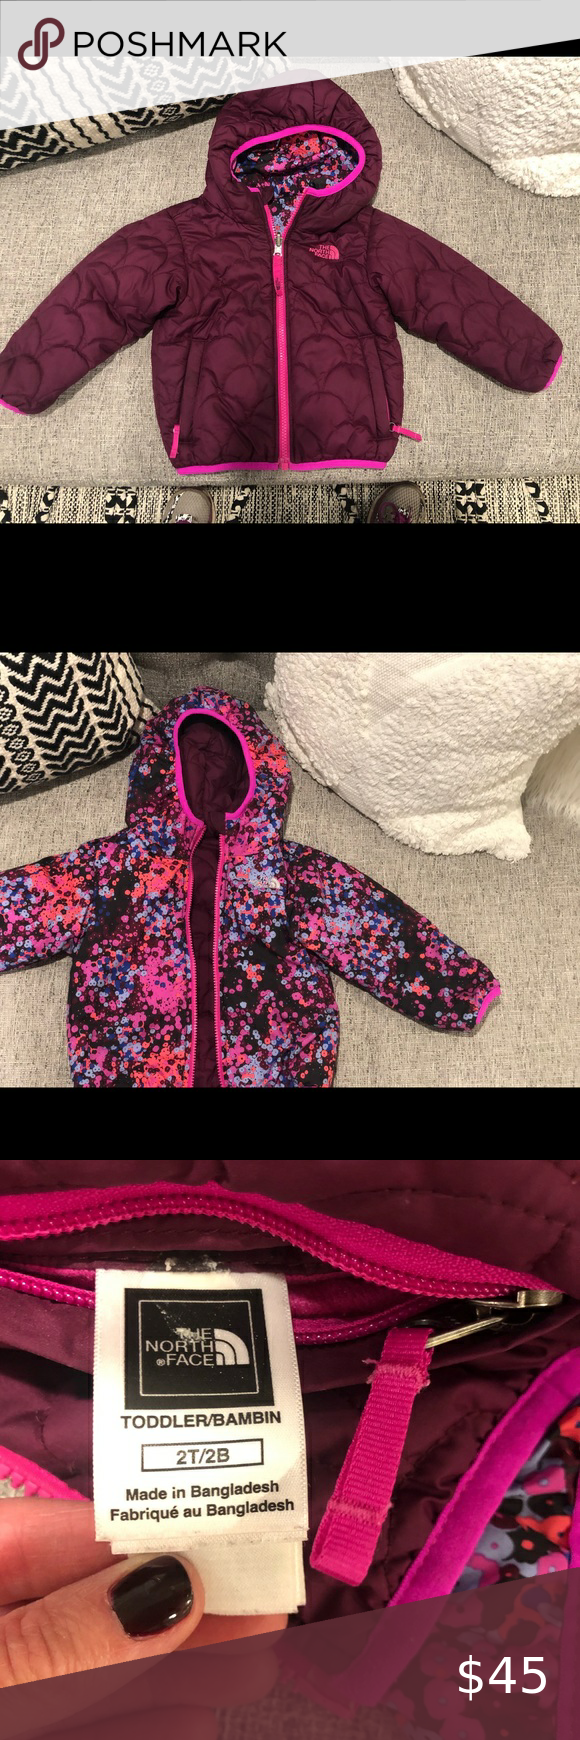 Toddler North Face Jacket North Face Jacket The North Face Clothes Design [ 1740 x 580 Pixel ]